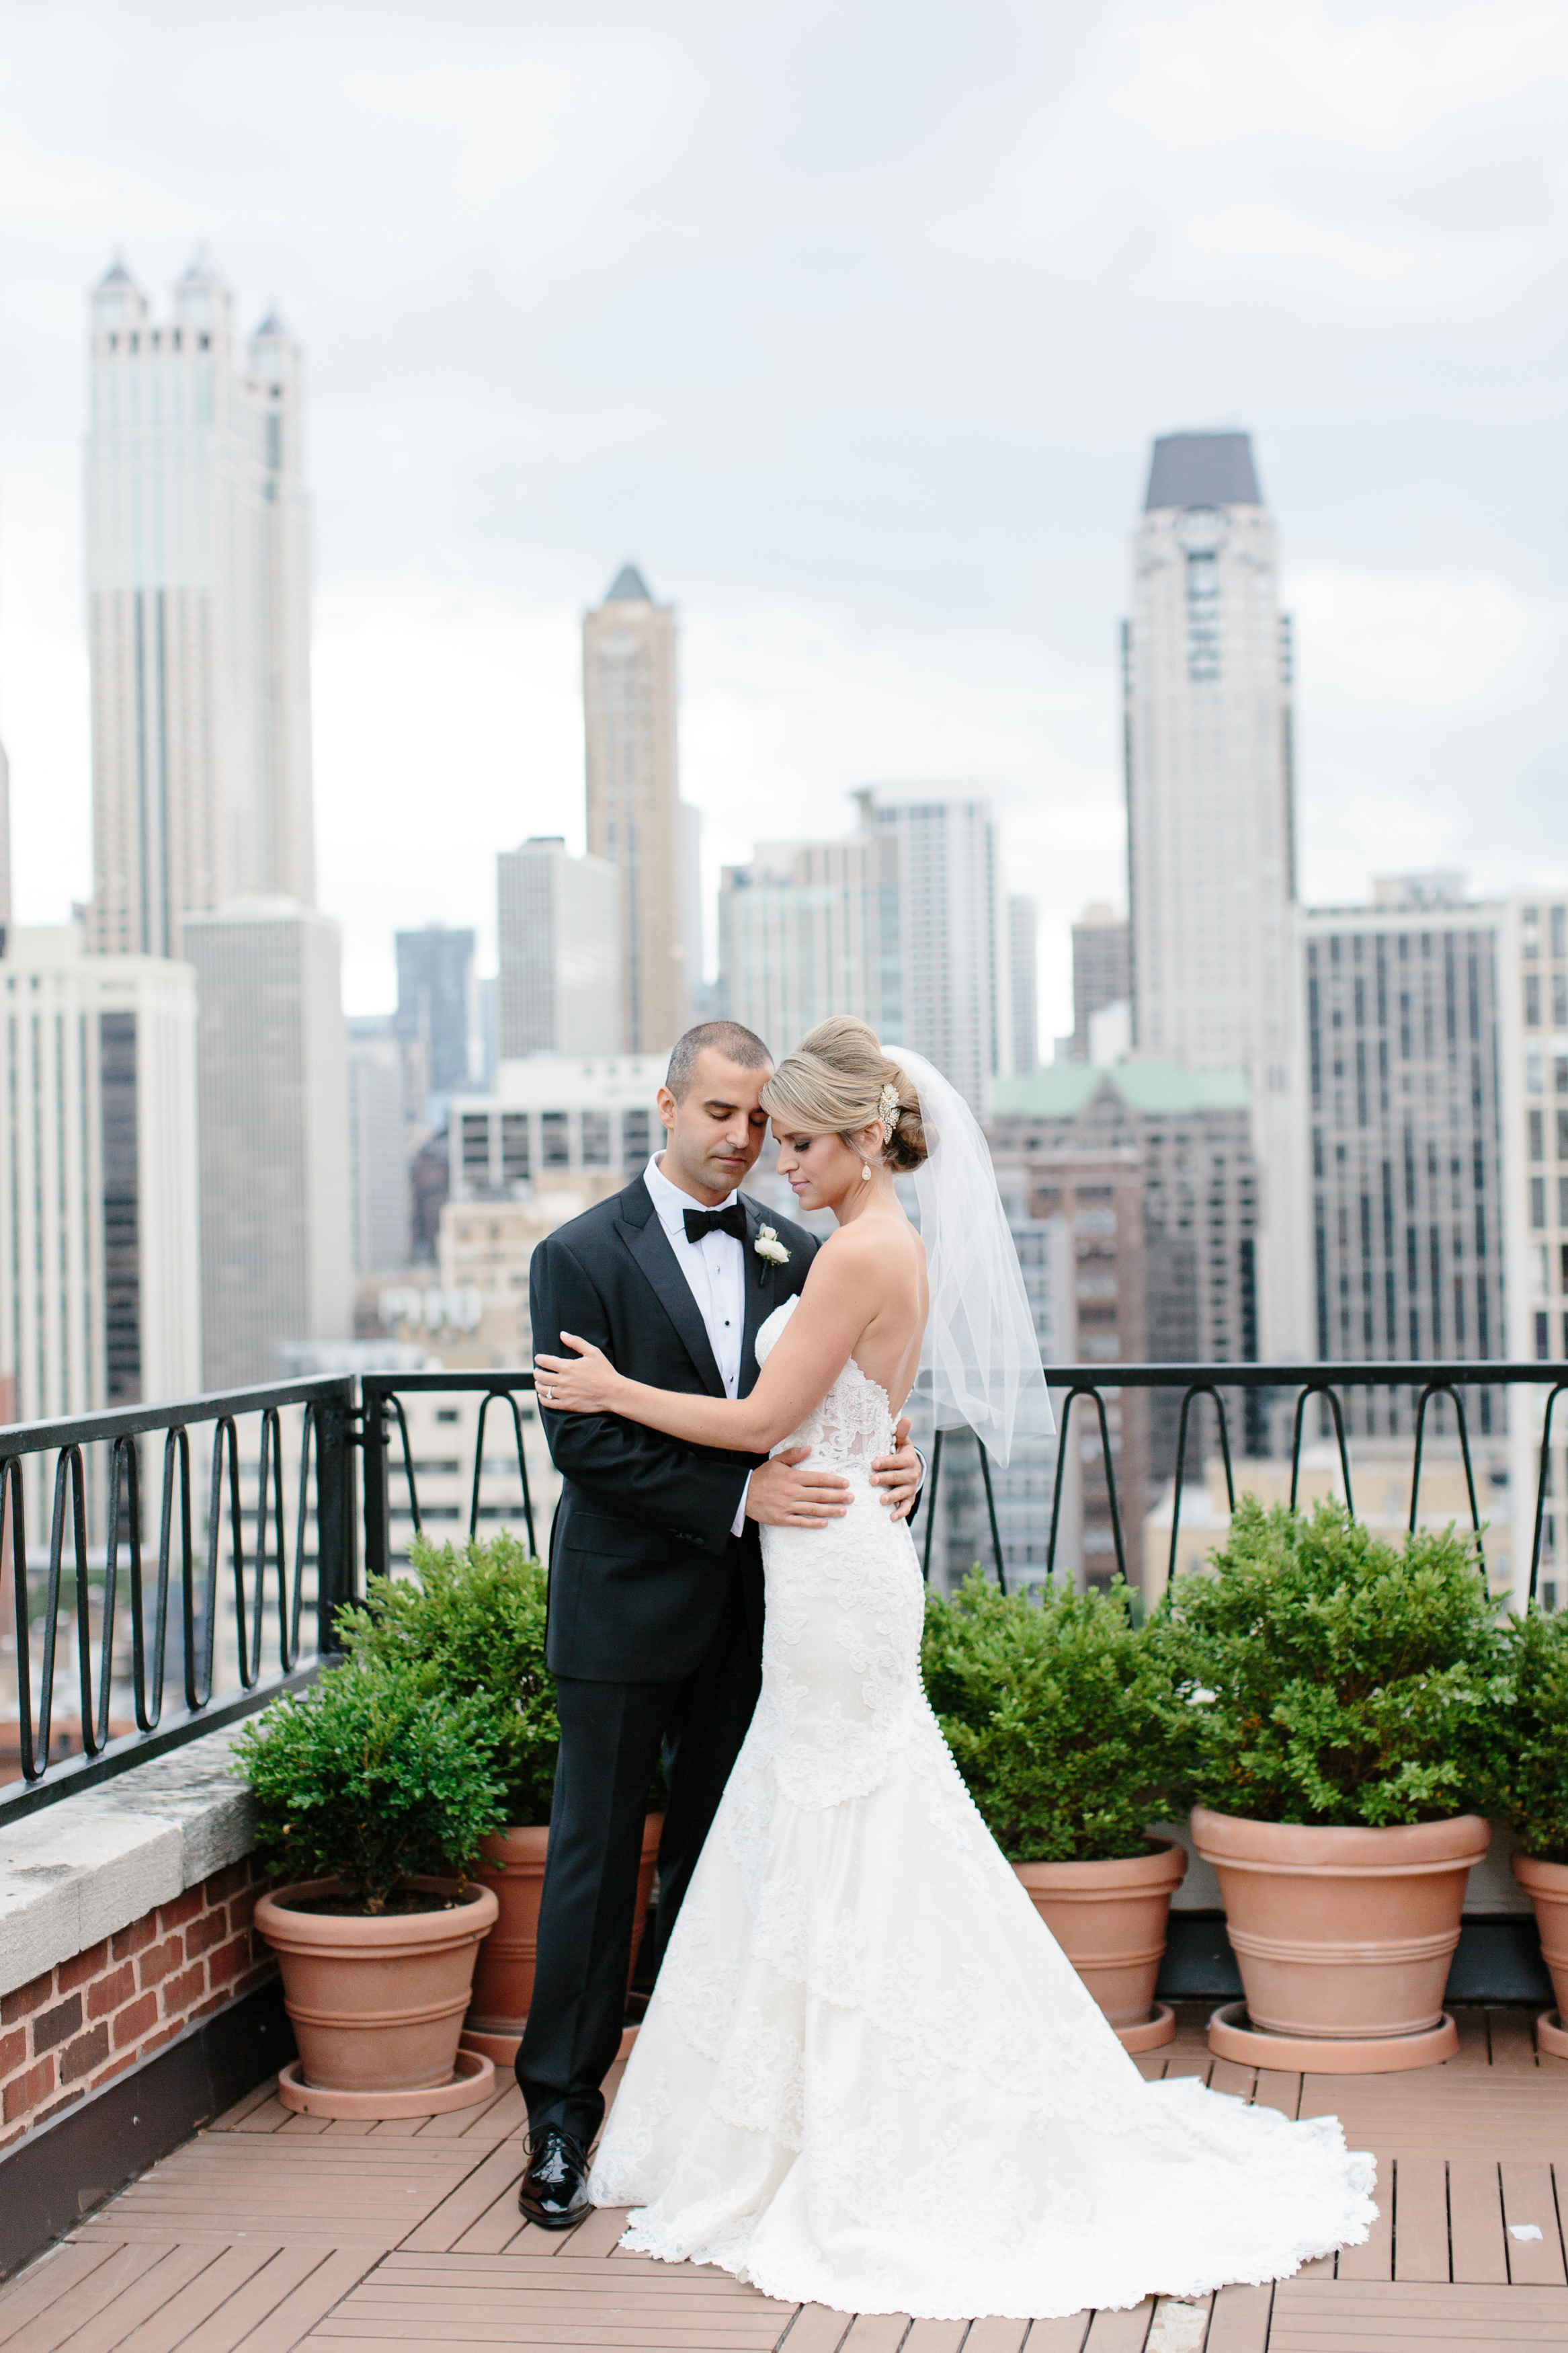 Nicodem Creative_Wilson Wedding_Germania Place Chicago Blog-9.jpg